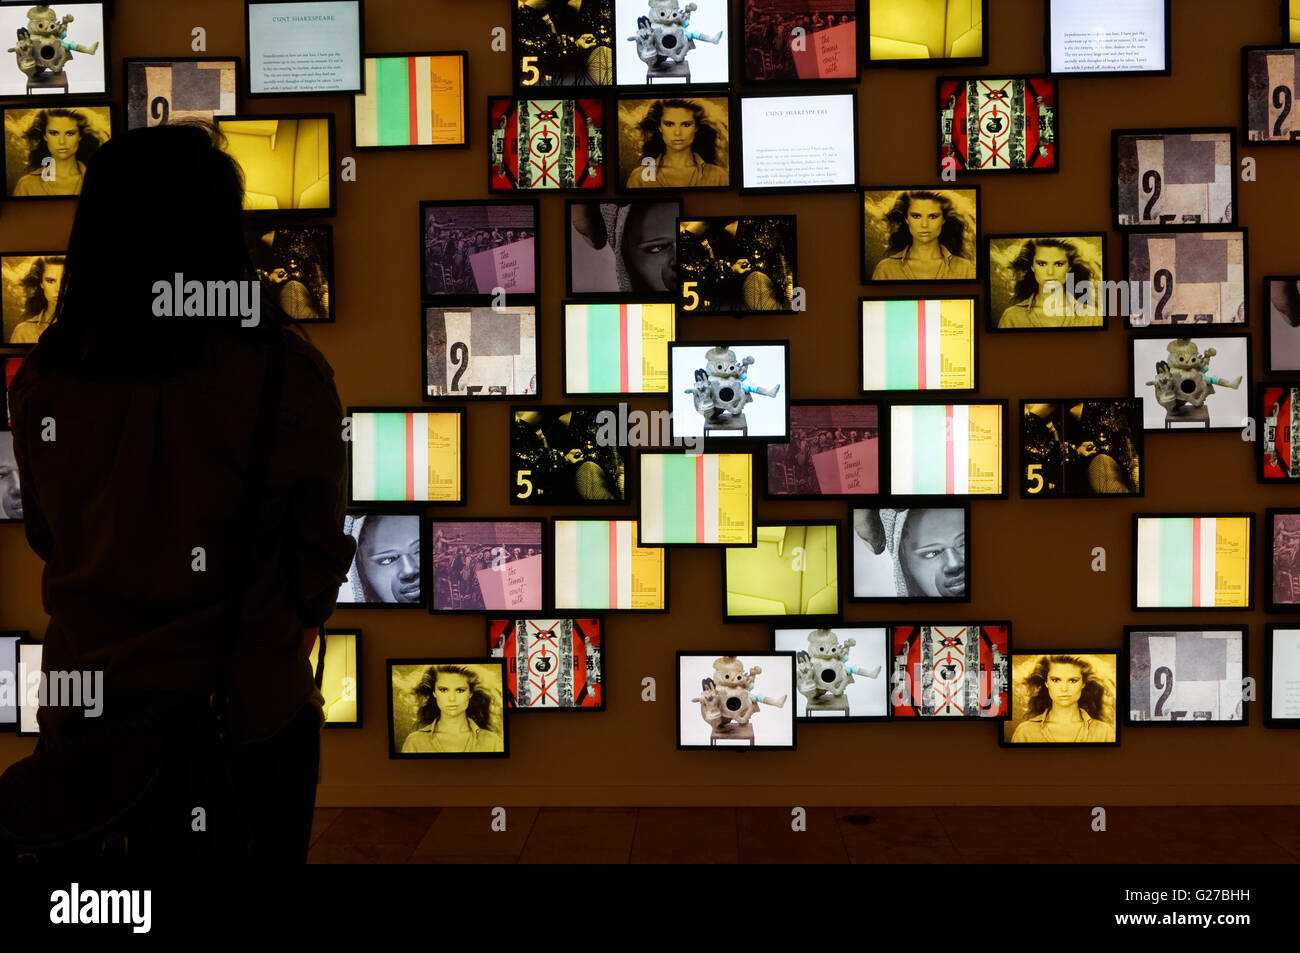 Woman looking at a collage of digital images on LCD screens, Mashup: Roots of Modern Culture exhibit, Vancouver - Stock Image